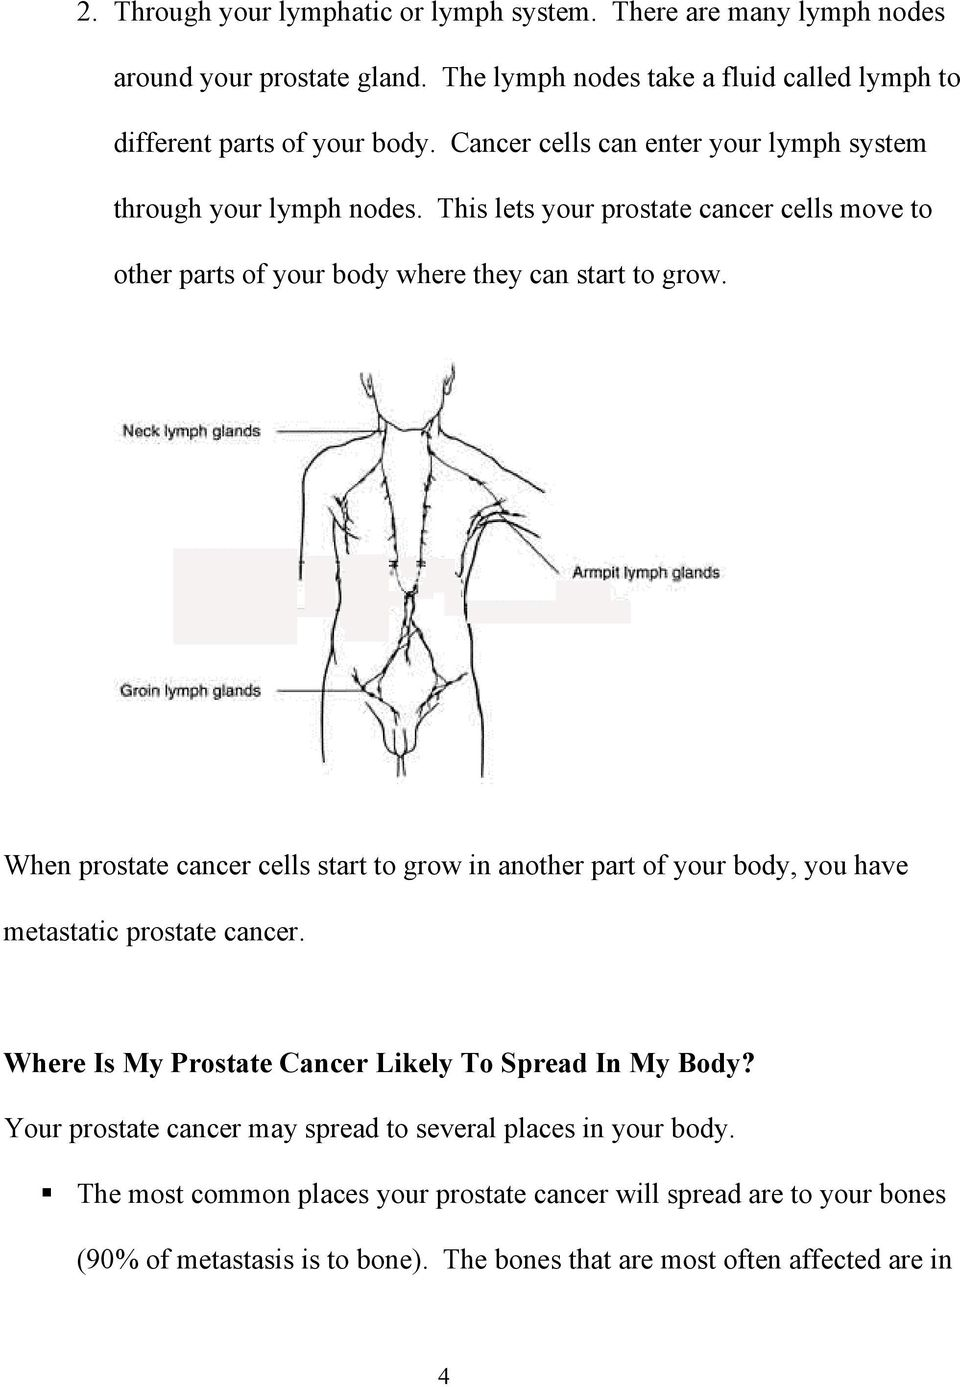 When prostate cancer cells start to grow in another part of your body, you have metastatic prostate cancer. Where Is My Prostate Cancer Likely To Spread In My Body?